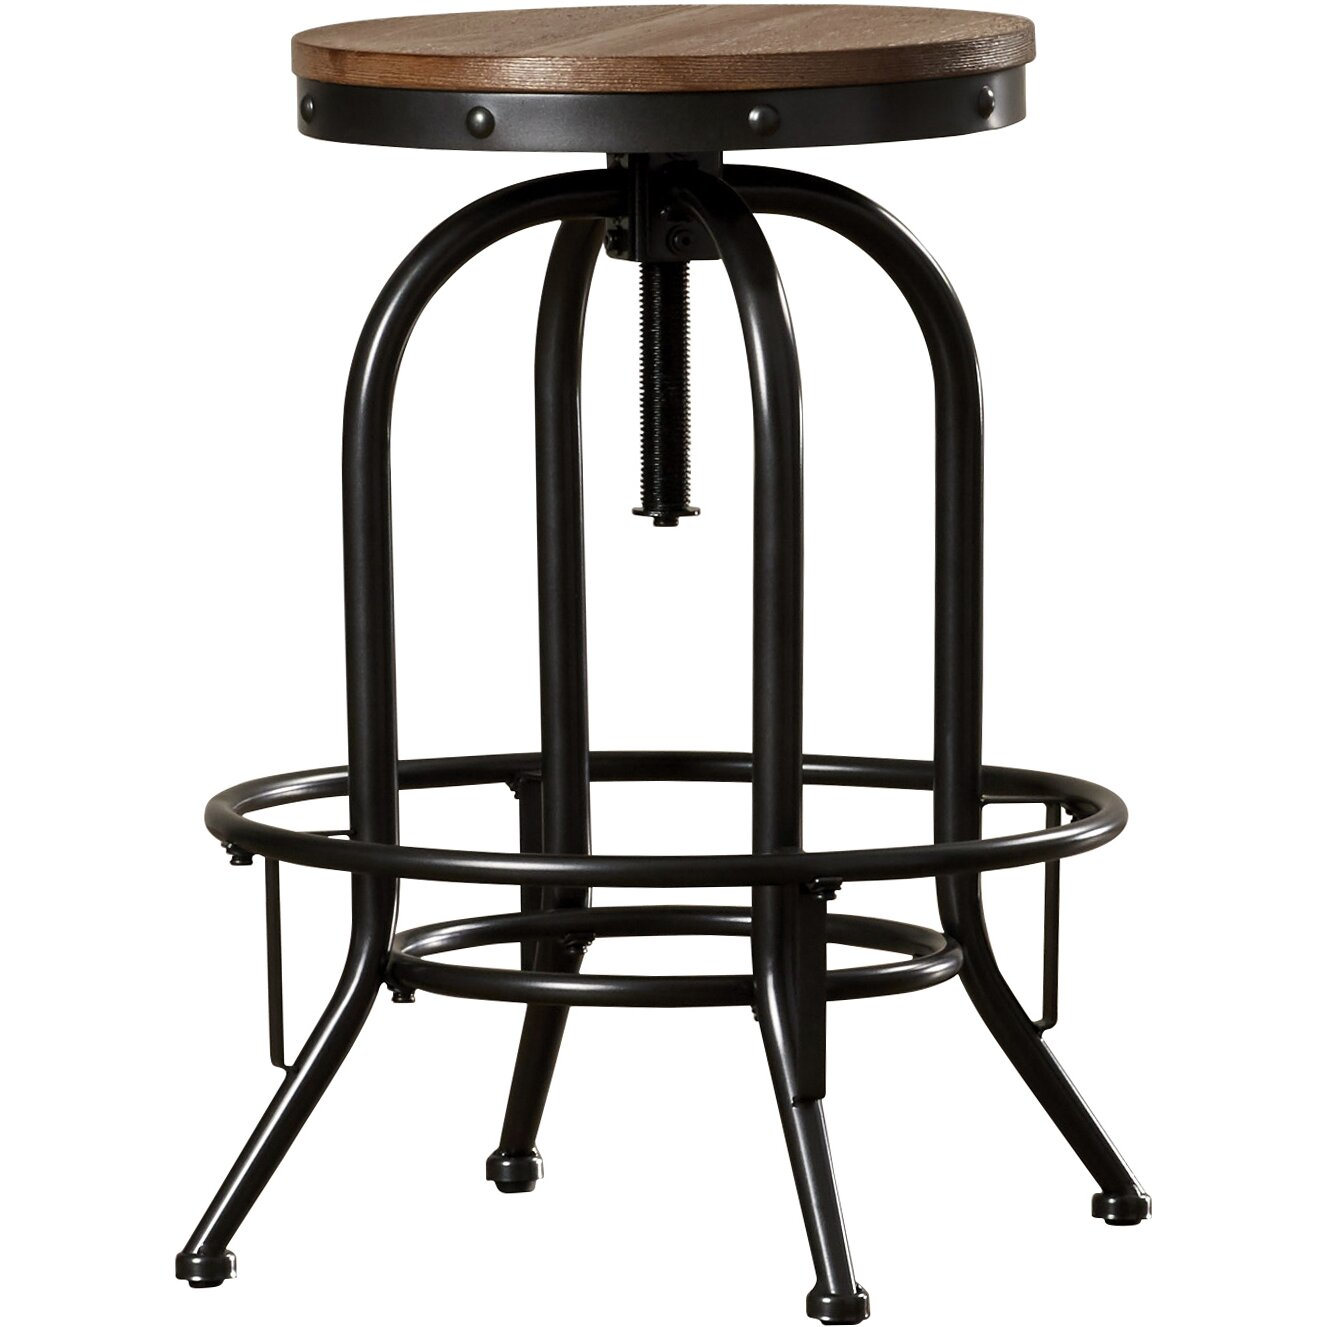 Trent Austin Design Empire Adjustable Height Swivel Bar  : Trent Austin Design Empire Adjustable Height Swivel Bar Stool TADN2834 from www.wayfair.com size 1327 x 1327 jpeg 158kB